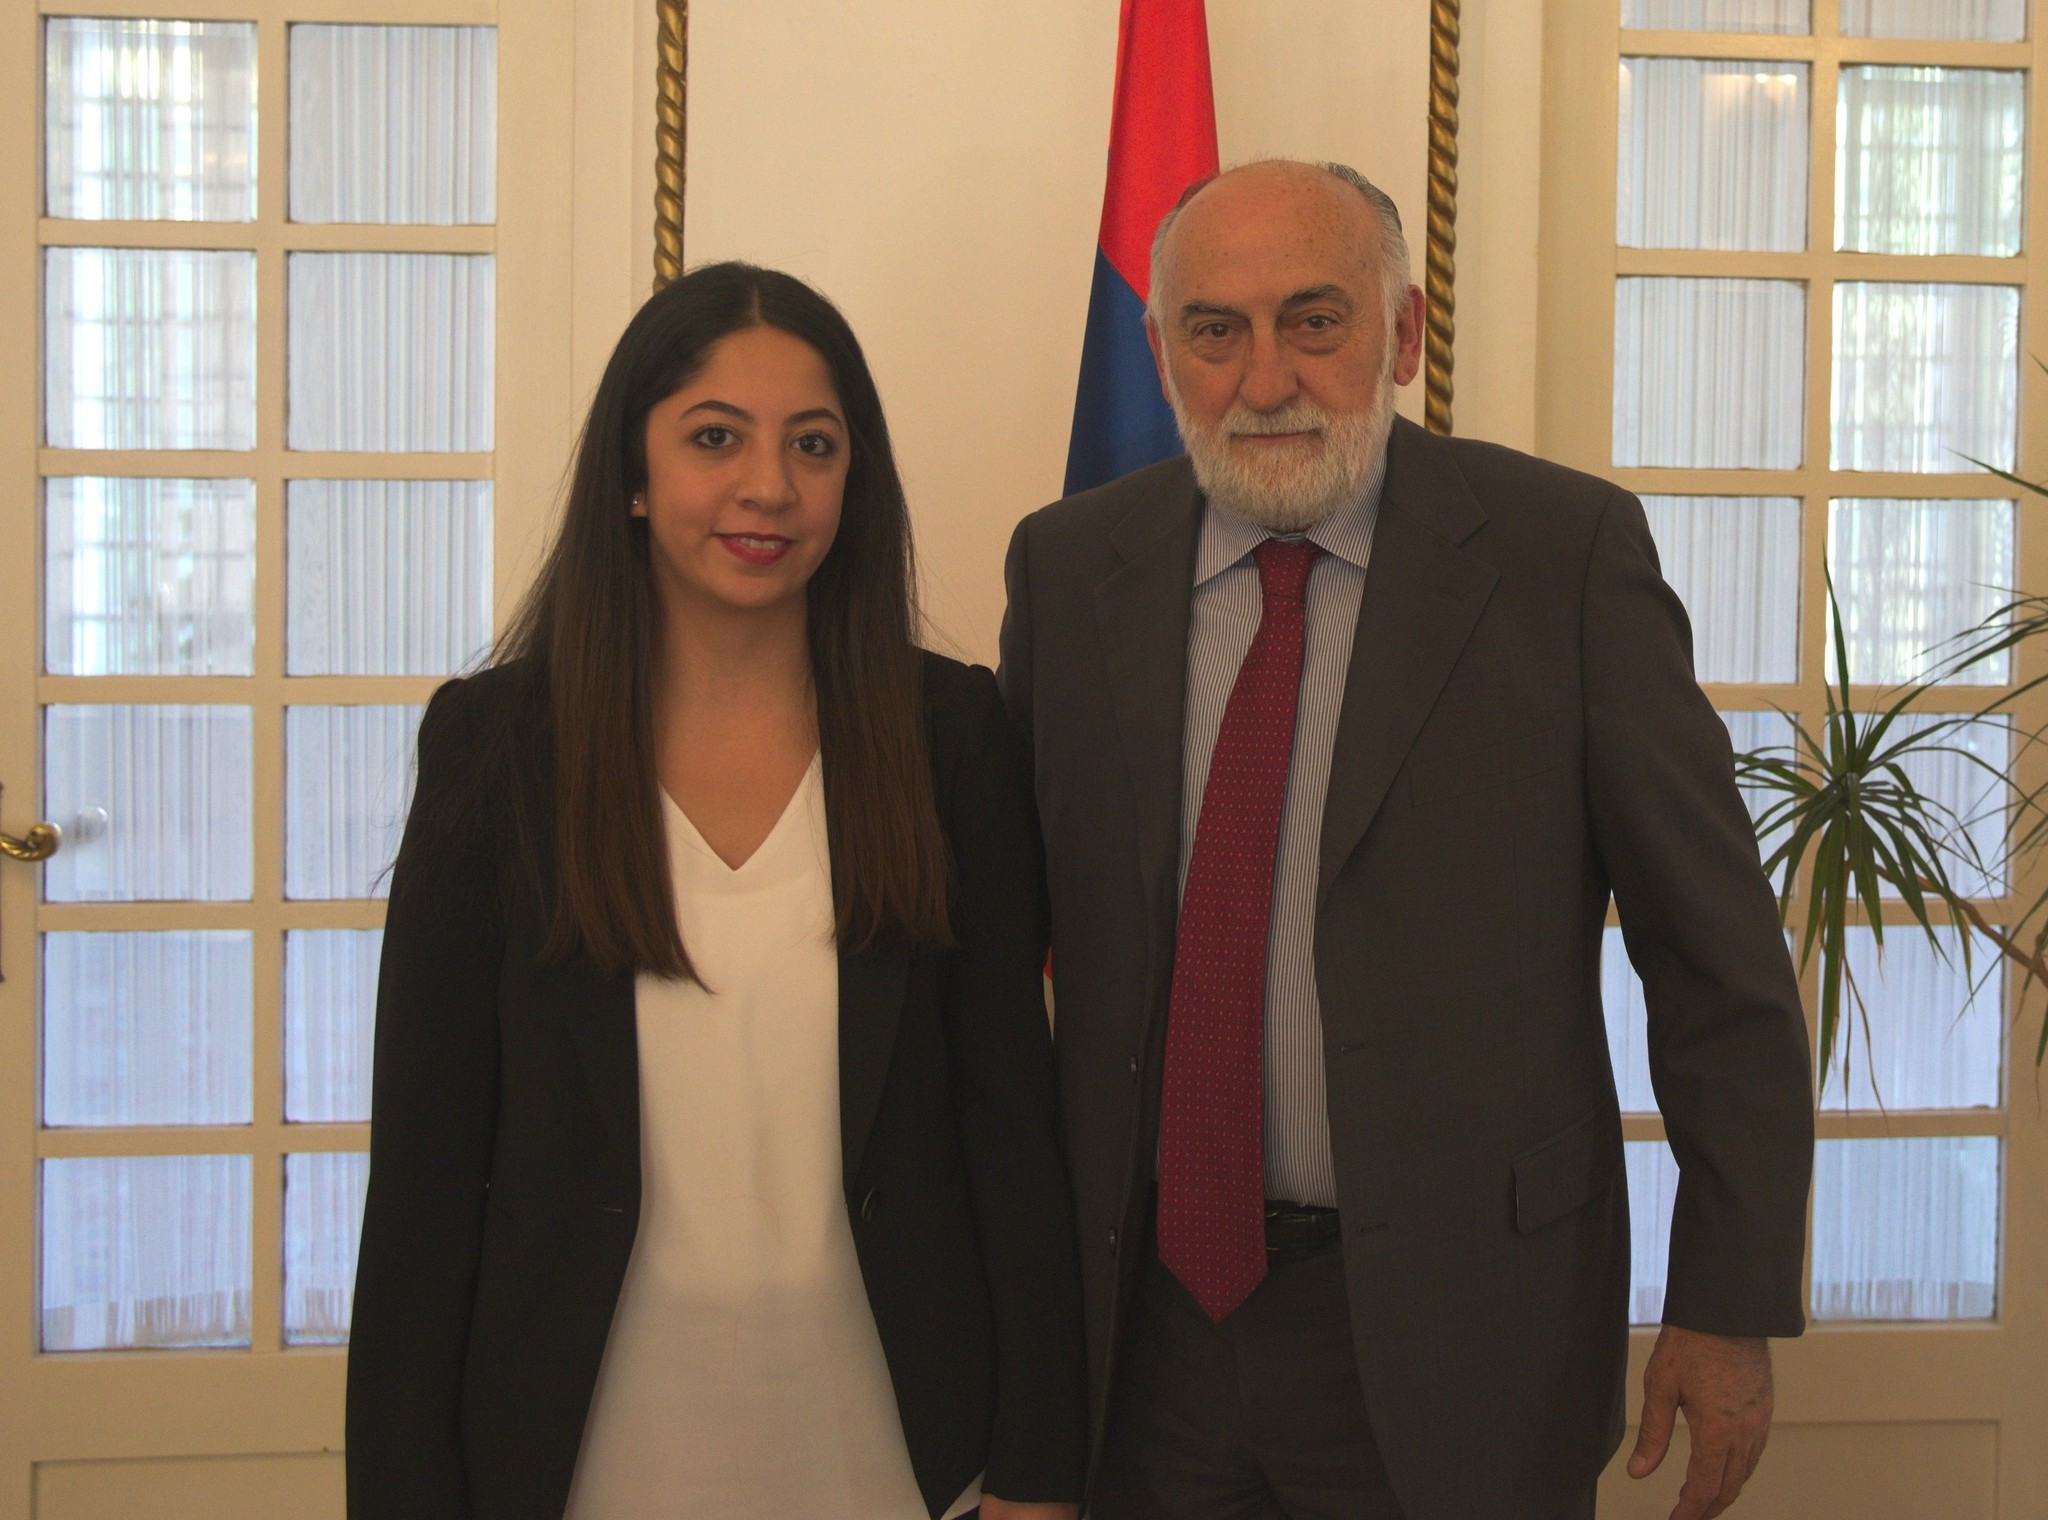 Daily Sabah's u00d6zgenur Sevinu00e7 with Serbian Ambassador Danilo Vucetic. He told DS that Erdou011fanu2019s visit regarded with high importance by Serbia, not only for development of bilateral relations, but also for strengthening of peace & stability in region.